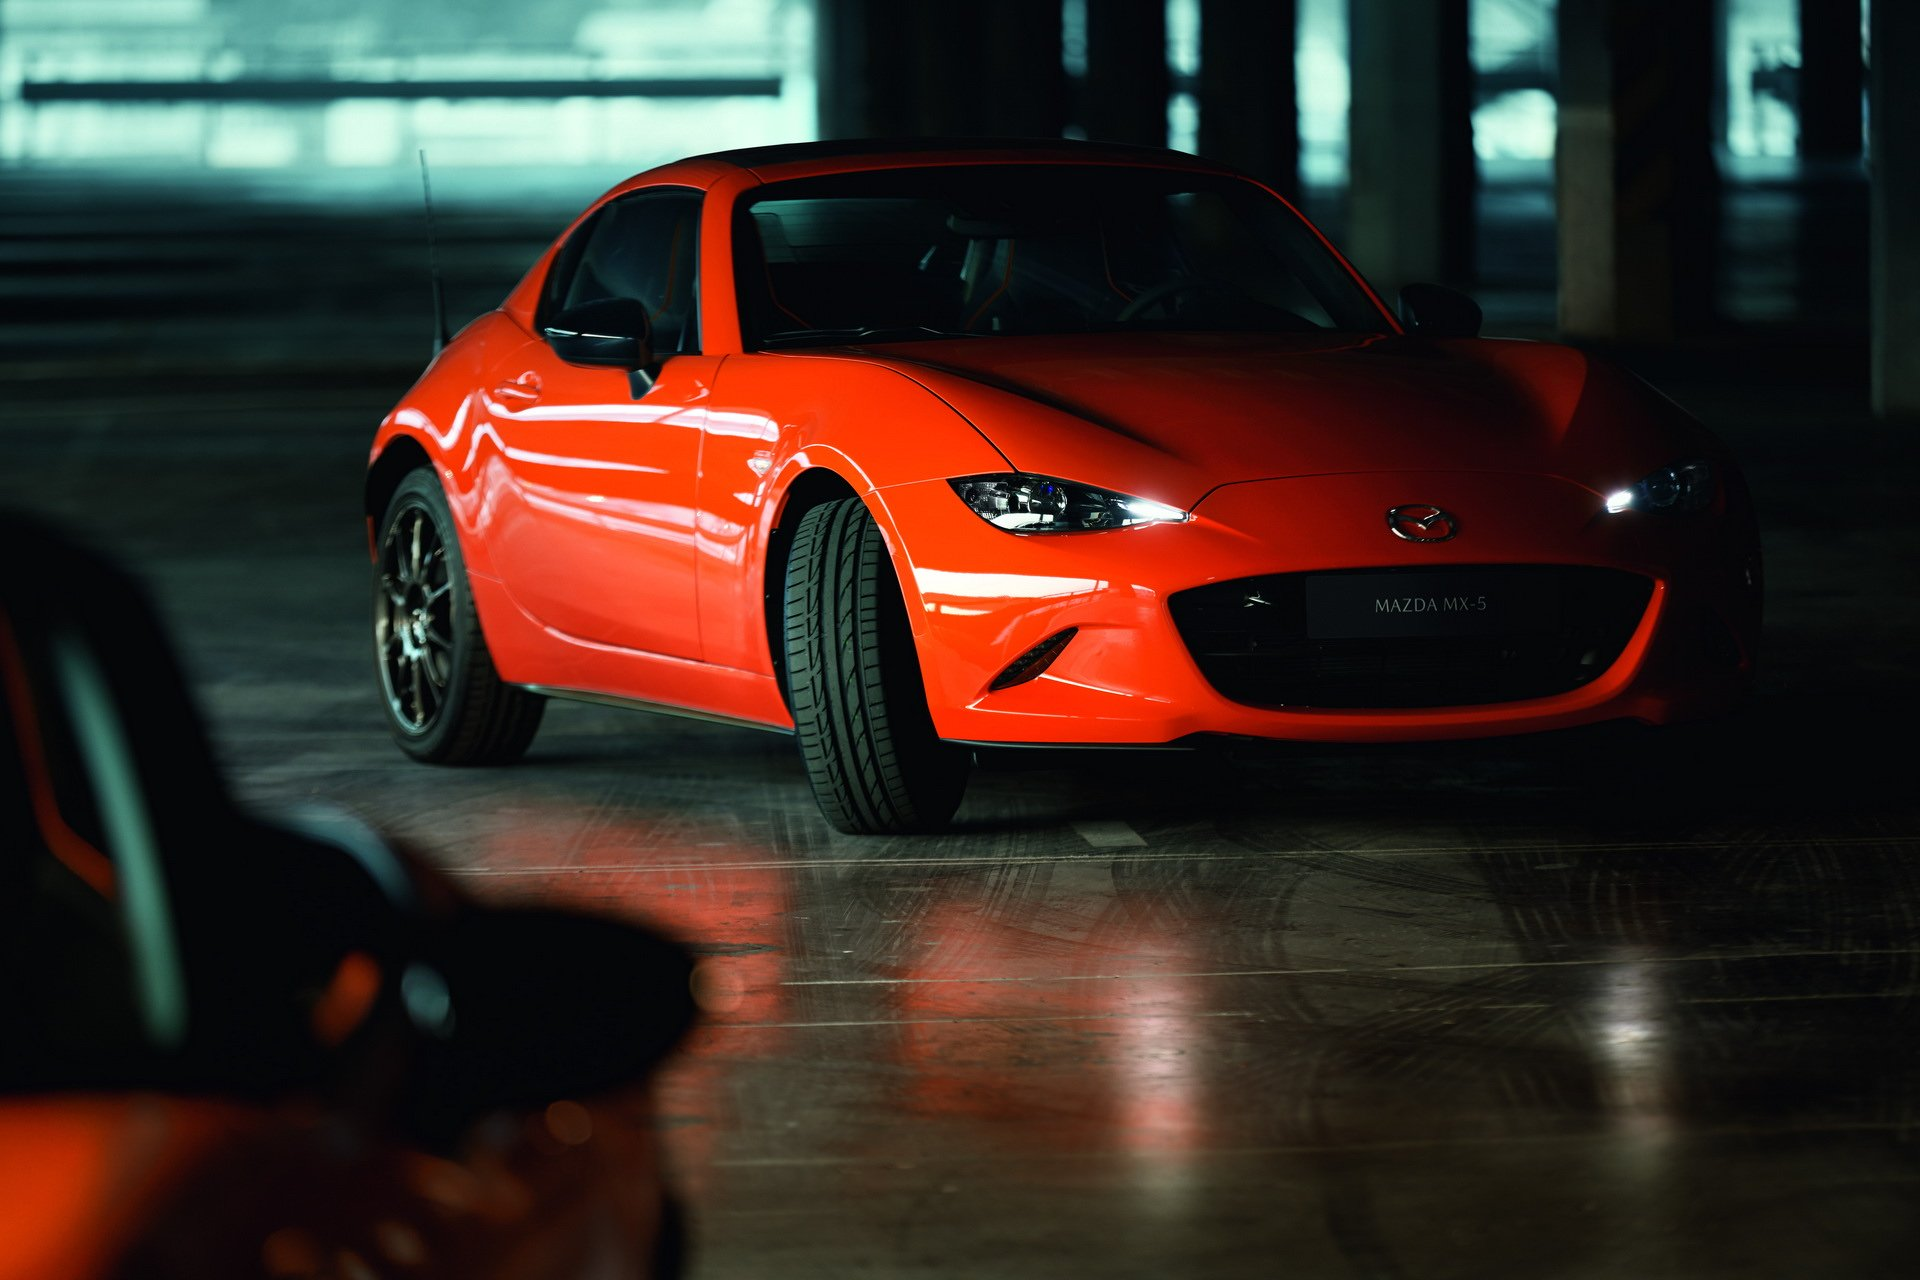 90dcccd5-mazda-mx-5-30th-ann-2